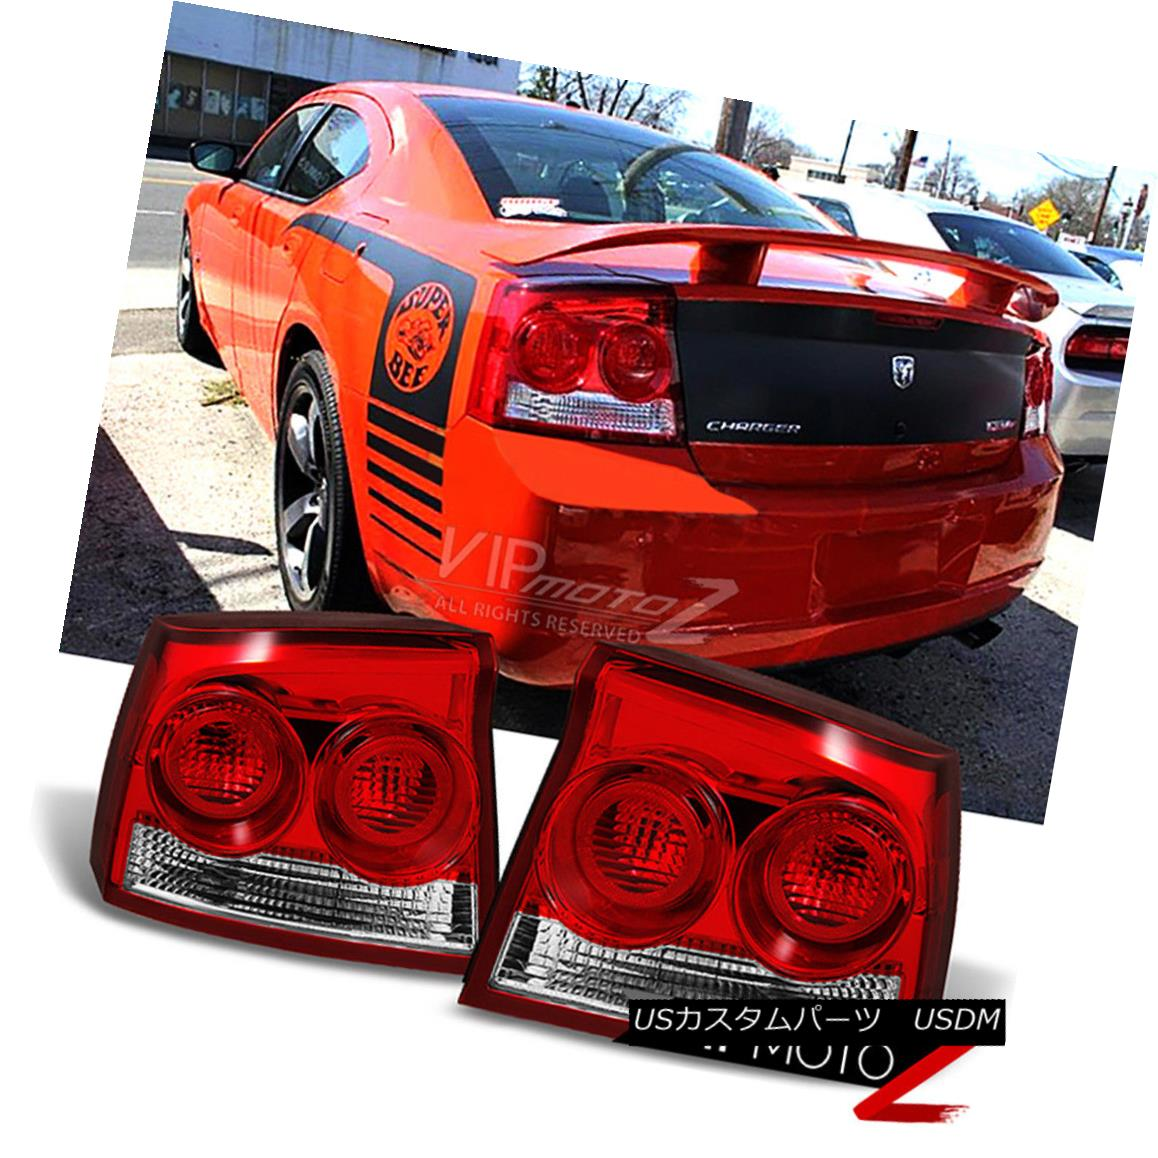 テールライト 09-10 Dodge Charger SXT RT SE Rear Tail Lights OE Style Replacement Left Right 09-10 Dodge Charger SXT RT SEリアテールライトOEスタイルの置き換え左右